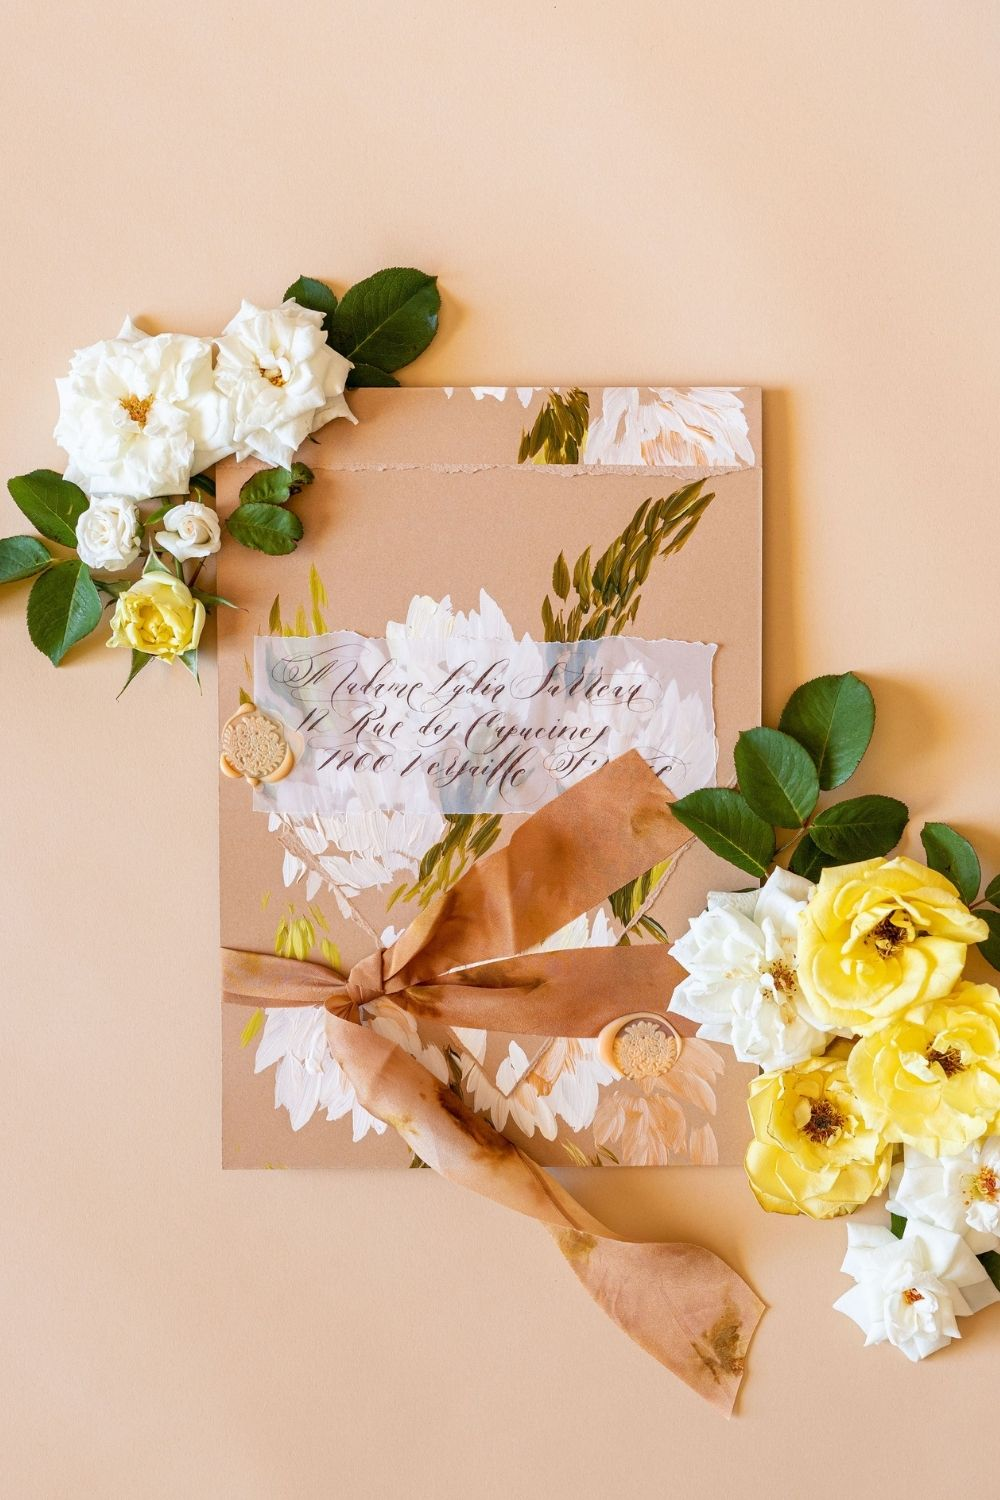 Timeless and classical, floral wedding stationery, custom designed for a luxury, floral wedding at Lake Como, Italy